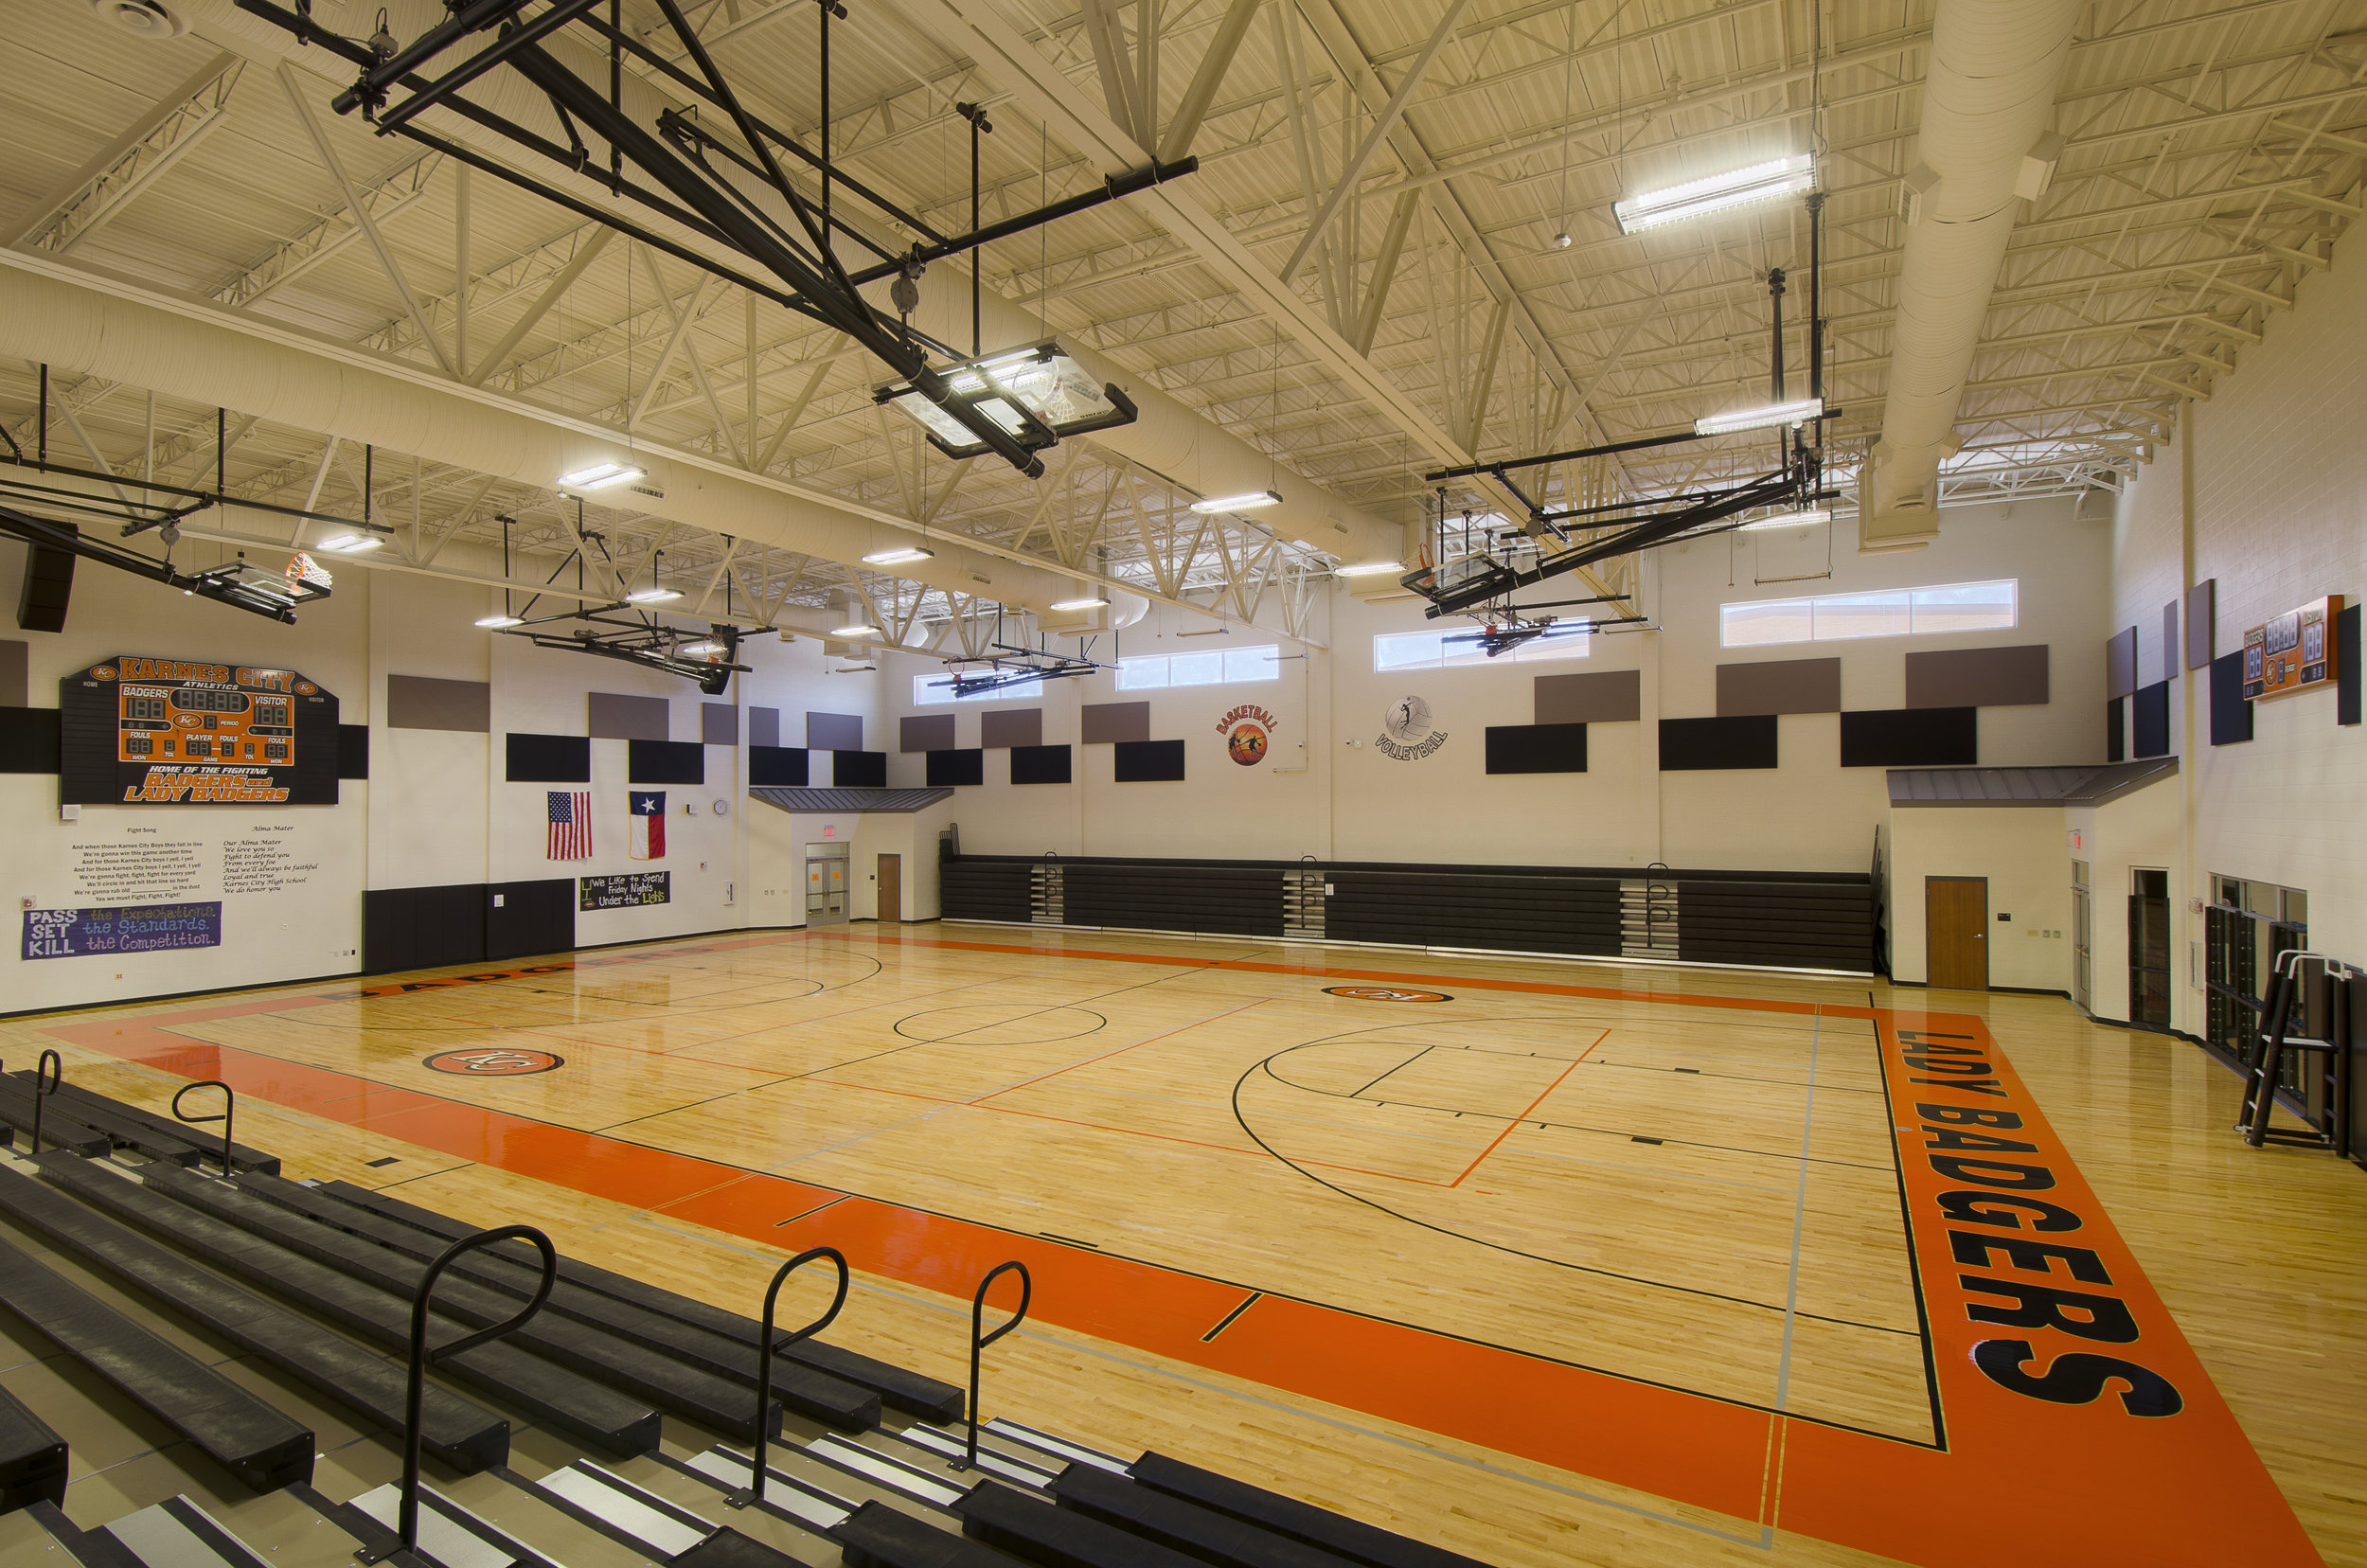 Karnes City H.S. Gym